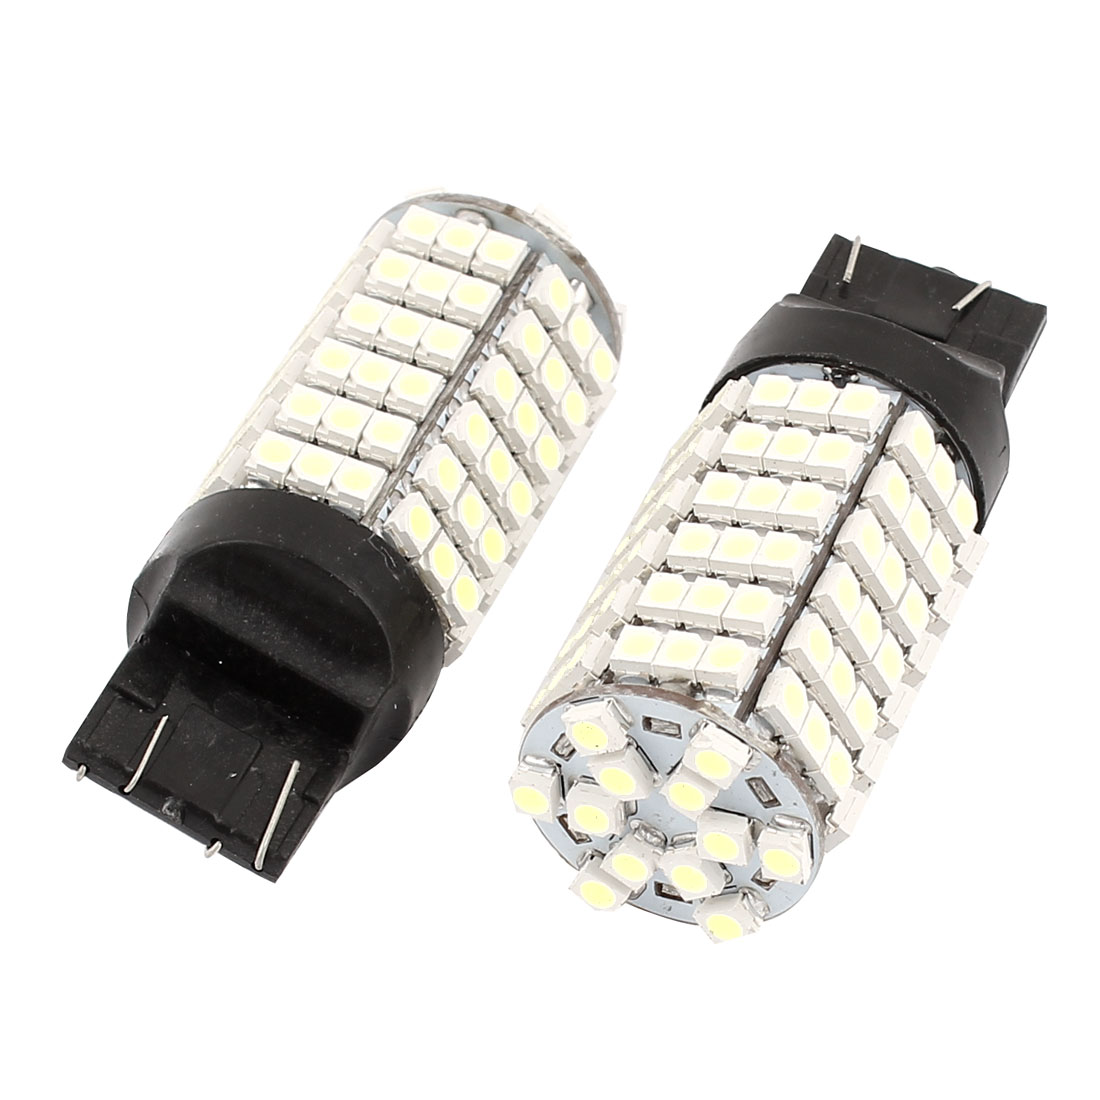 2 Pcs 7443 1210 SMD 120 LED Car Marker Light Signal Lamp Bulb White DC 12V W21W